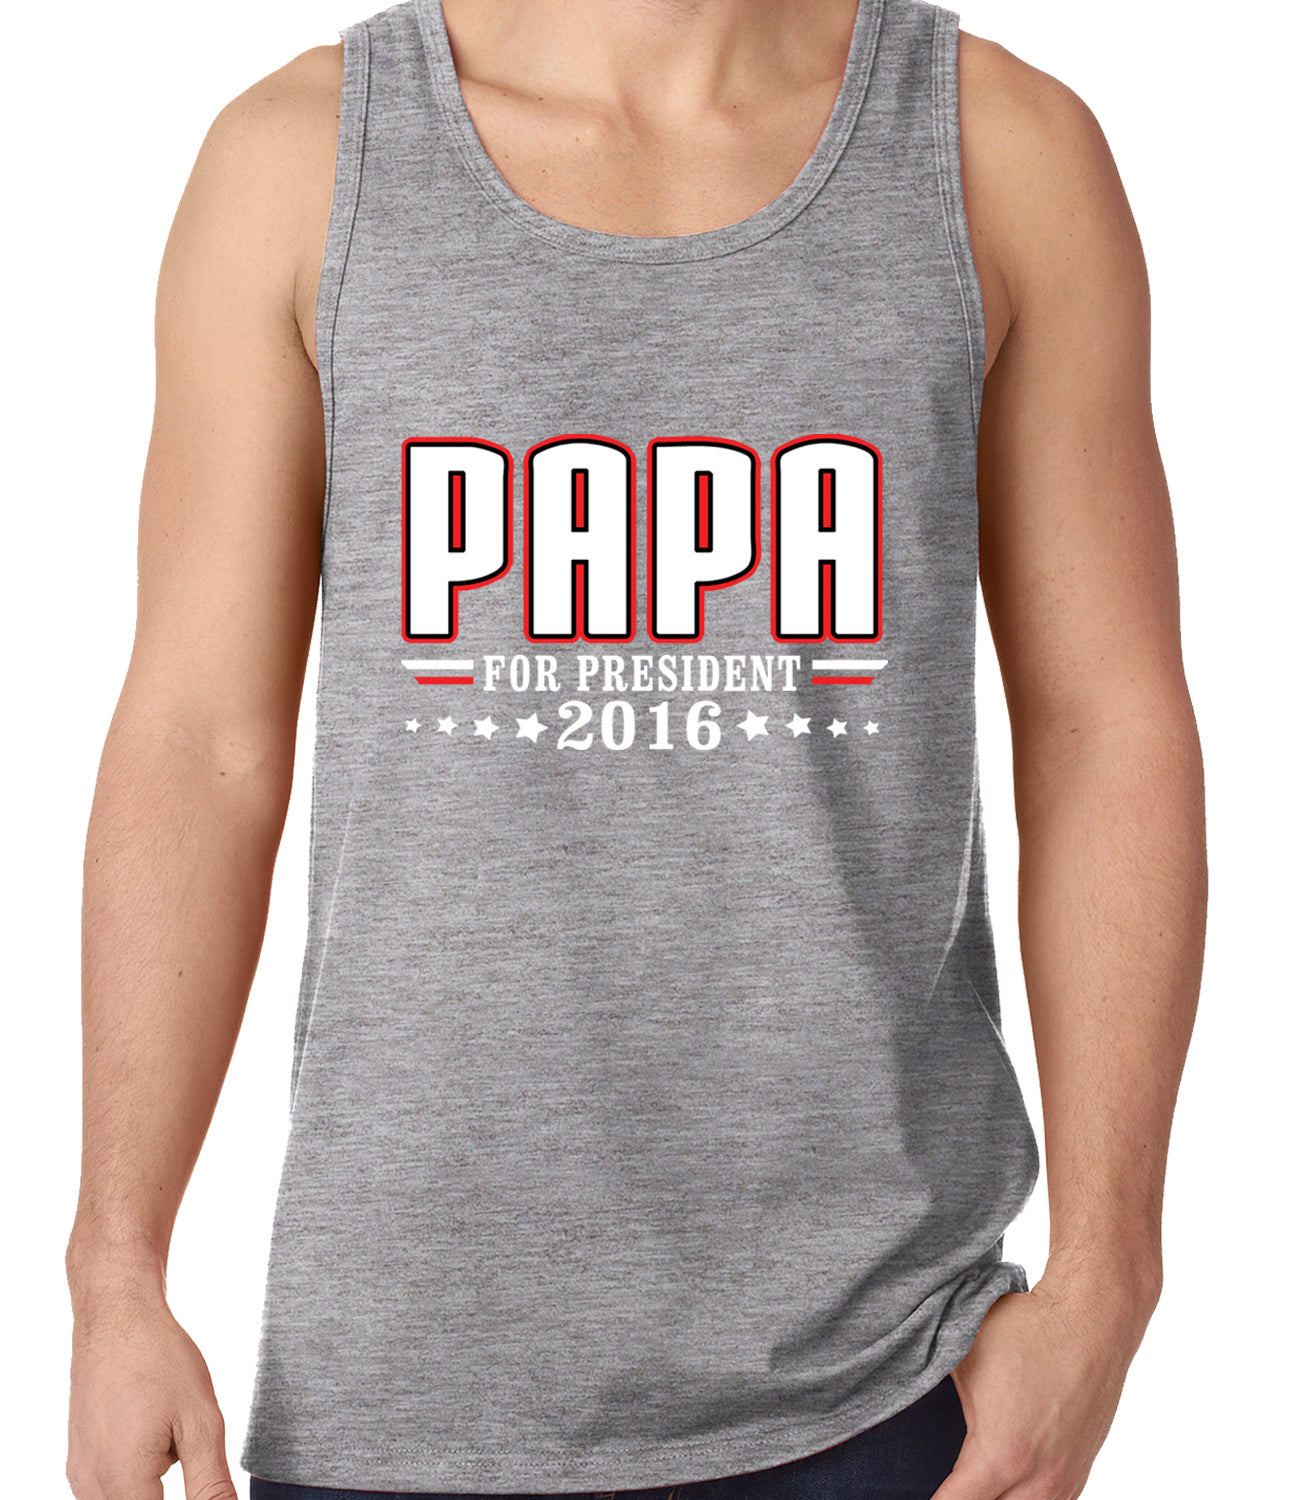 PAPA for PRESIDENT 2016 - Vote for Papa Tank Top